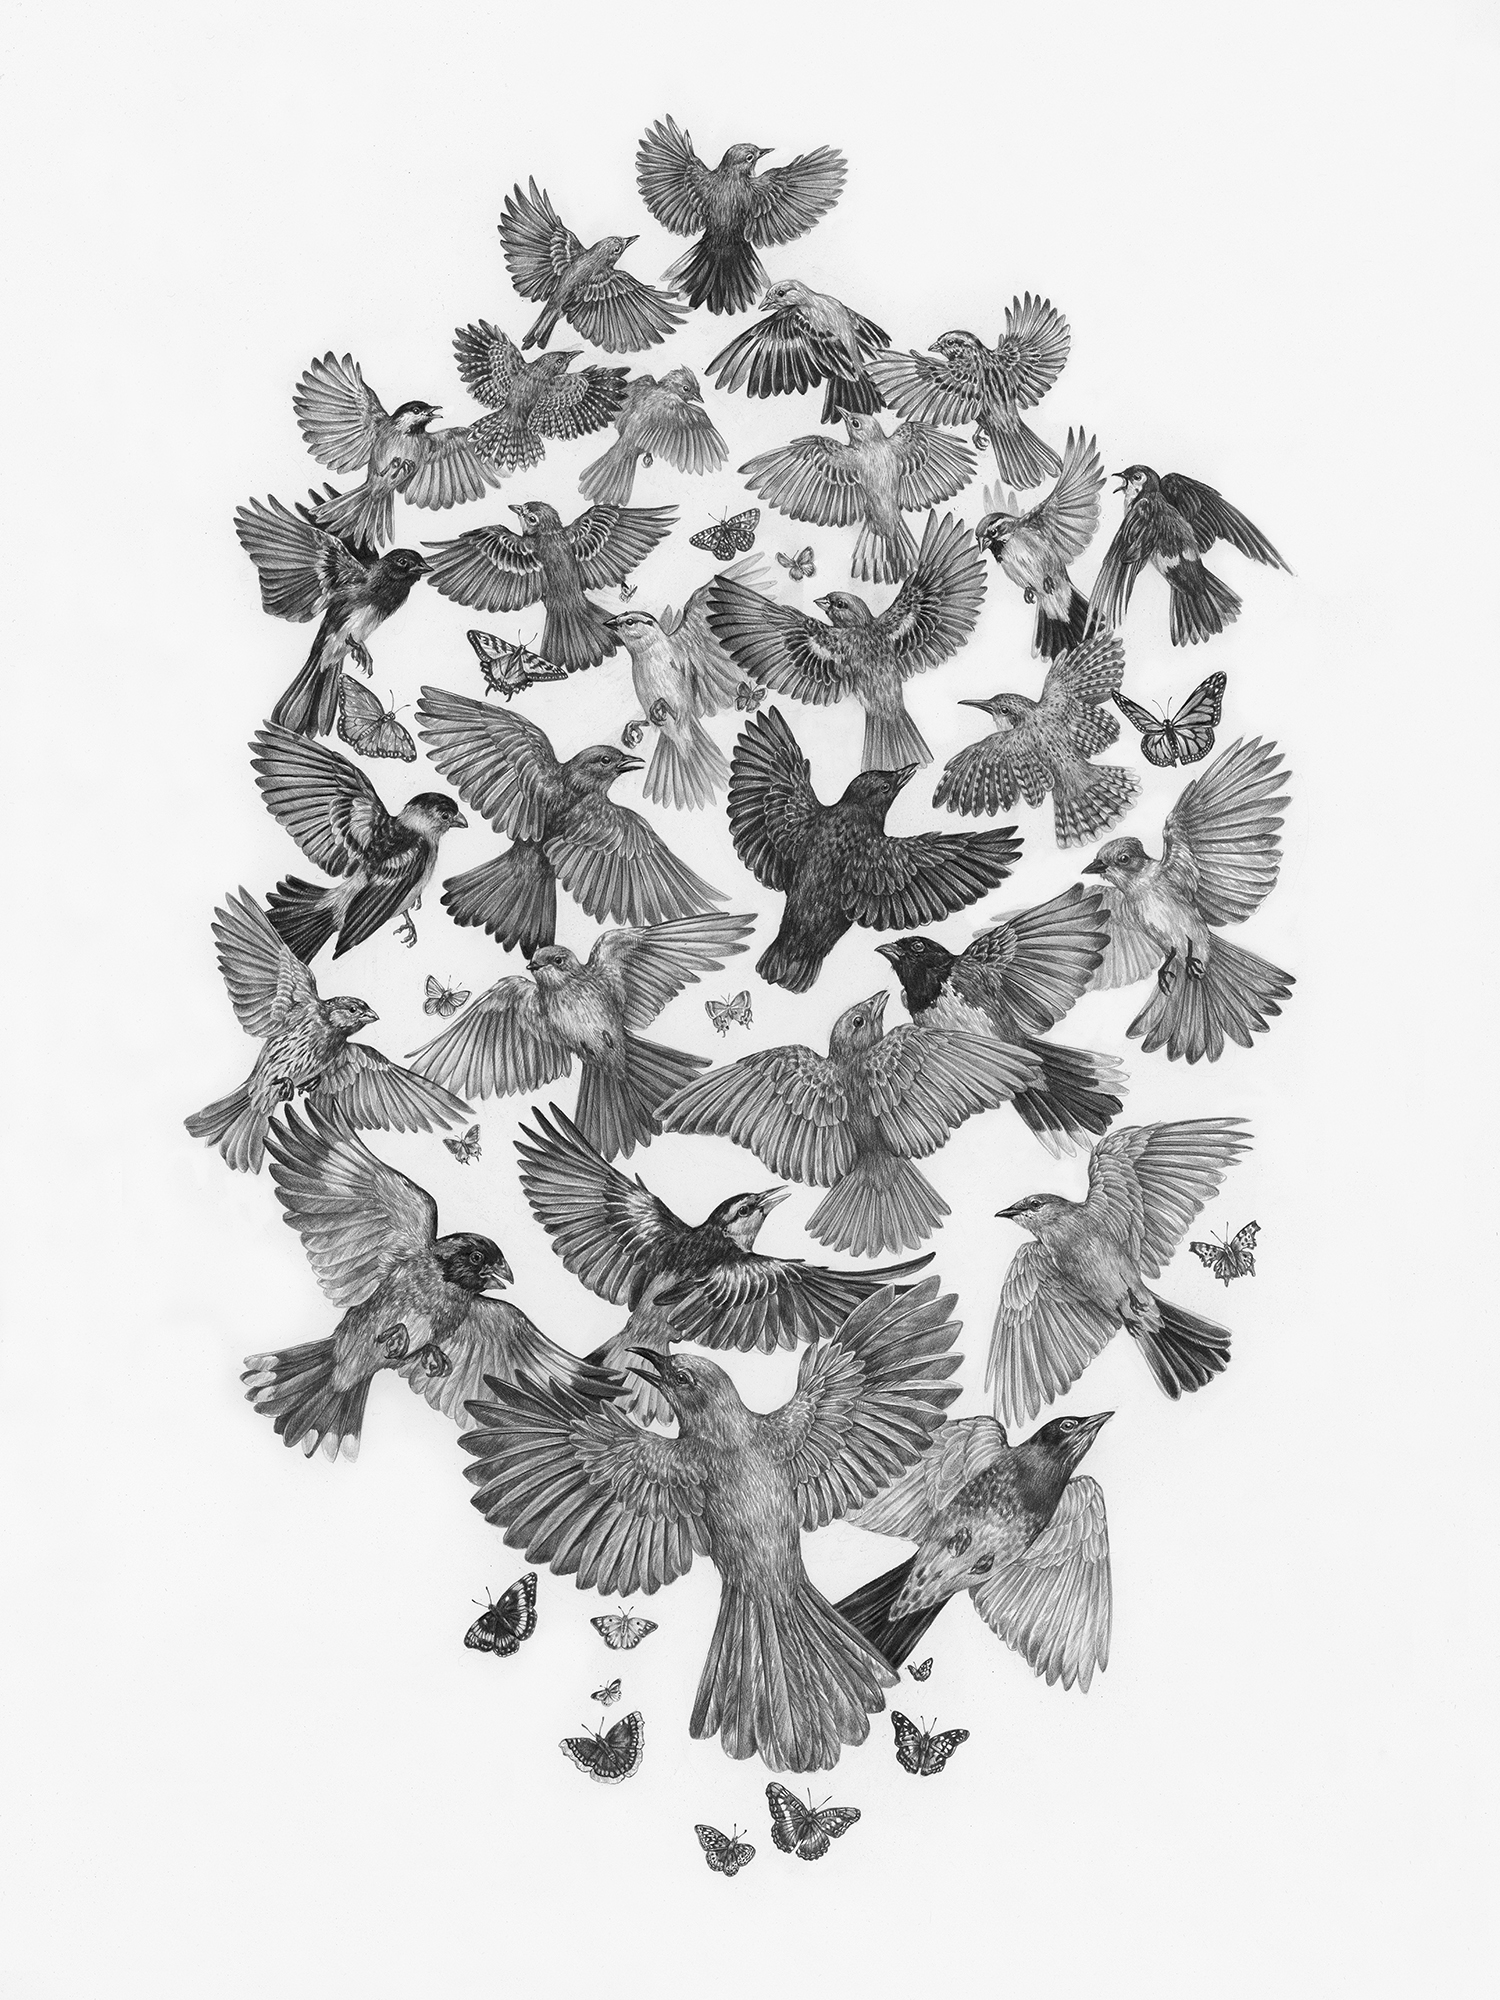 "Common Songbirds and Butterflies of Zion National Park, 18"" x 24"", Graphite on paper, 2019  Sold  SPECIES DEPICTED  Twenty-eight bird species and sixteen butterfly species commonly found in Zion National Park."